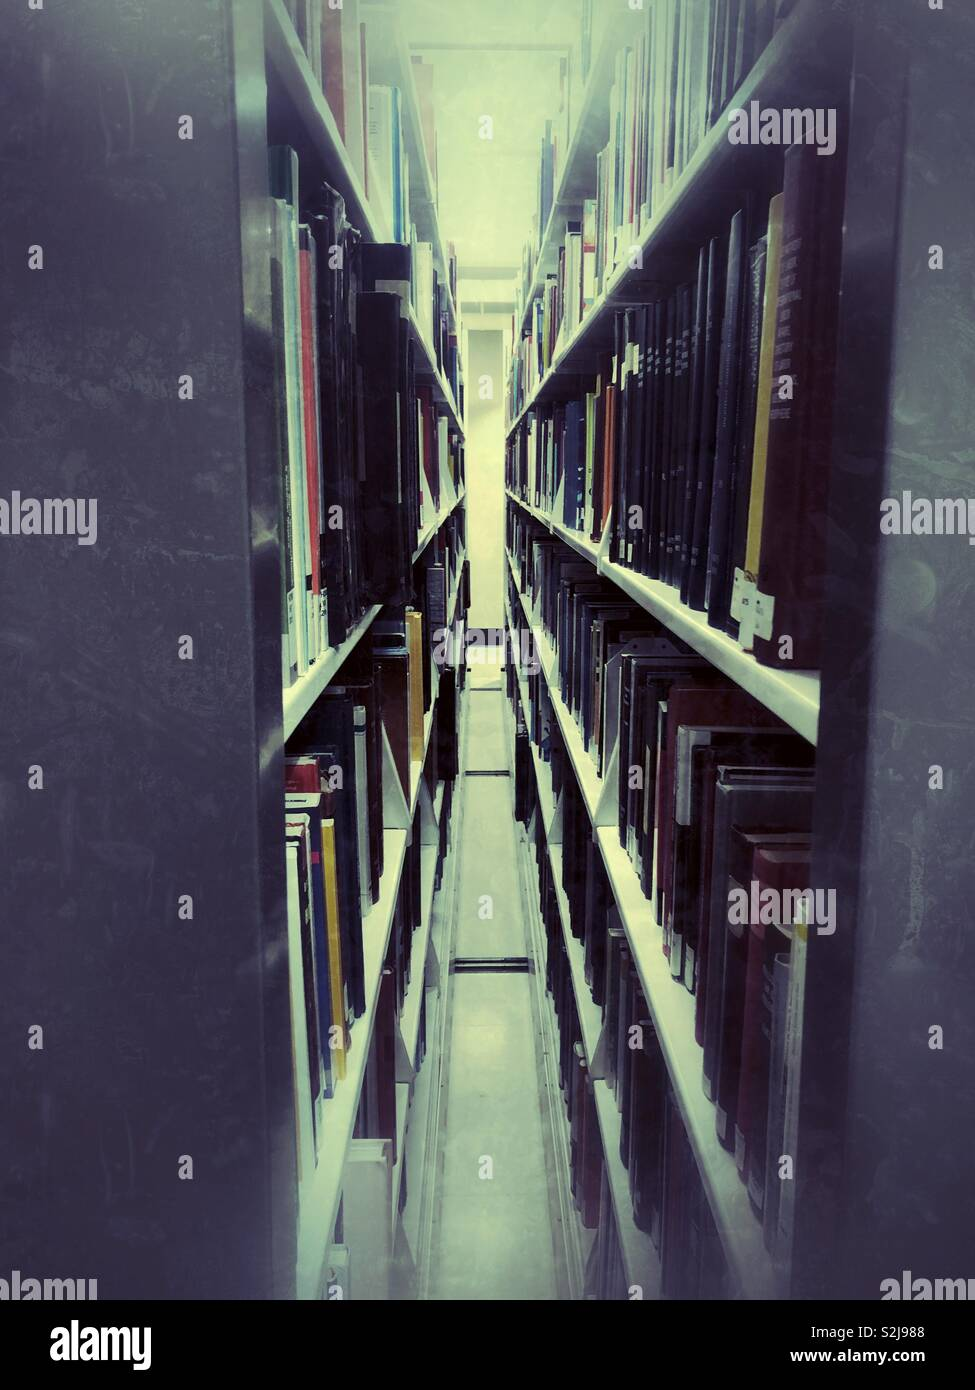 Between two moving book shelves in a library - Stock Image